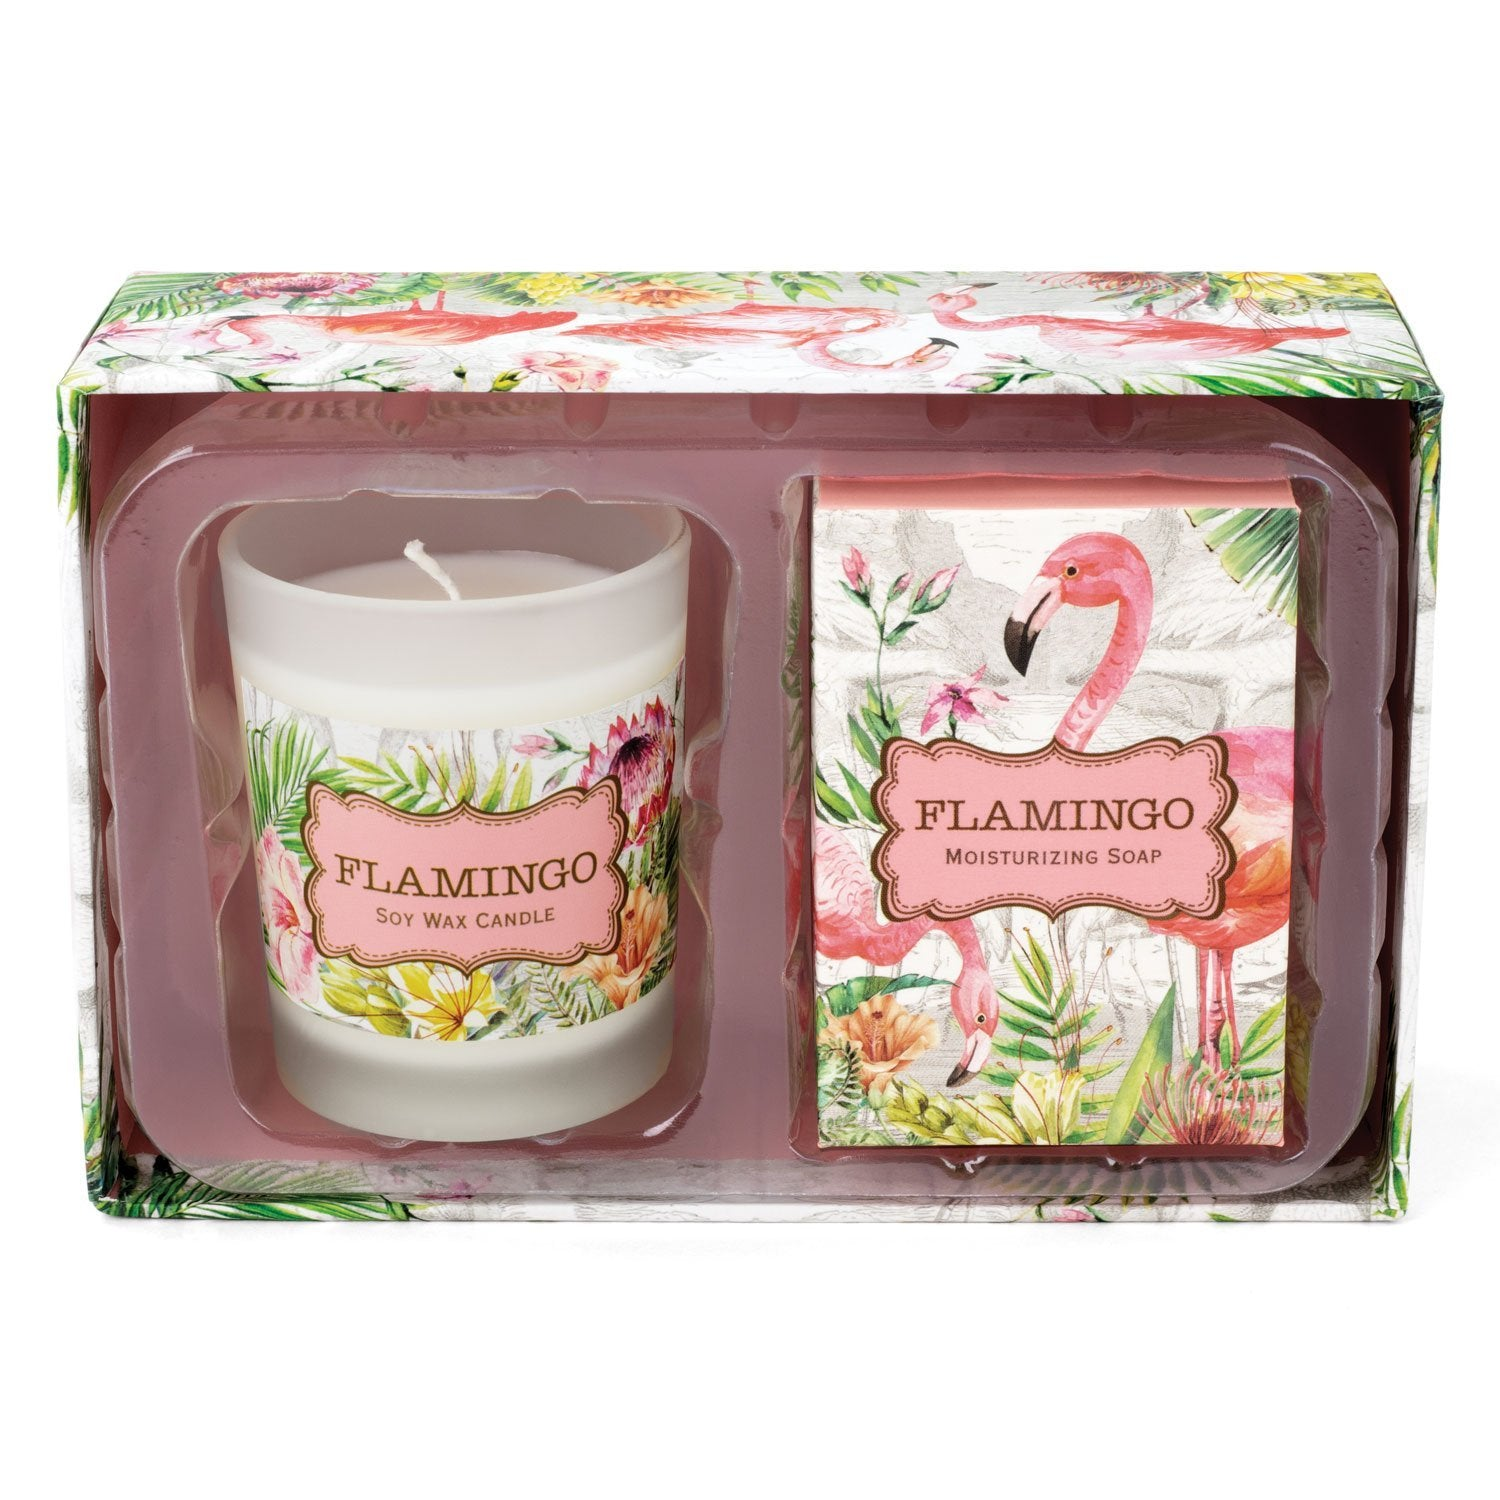 FLAMINGO CANDLE AND SOAP GIFT SET CSS320 - Molly's! A Chic and Unique Boutique